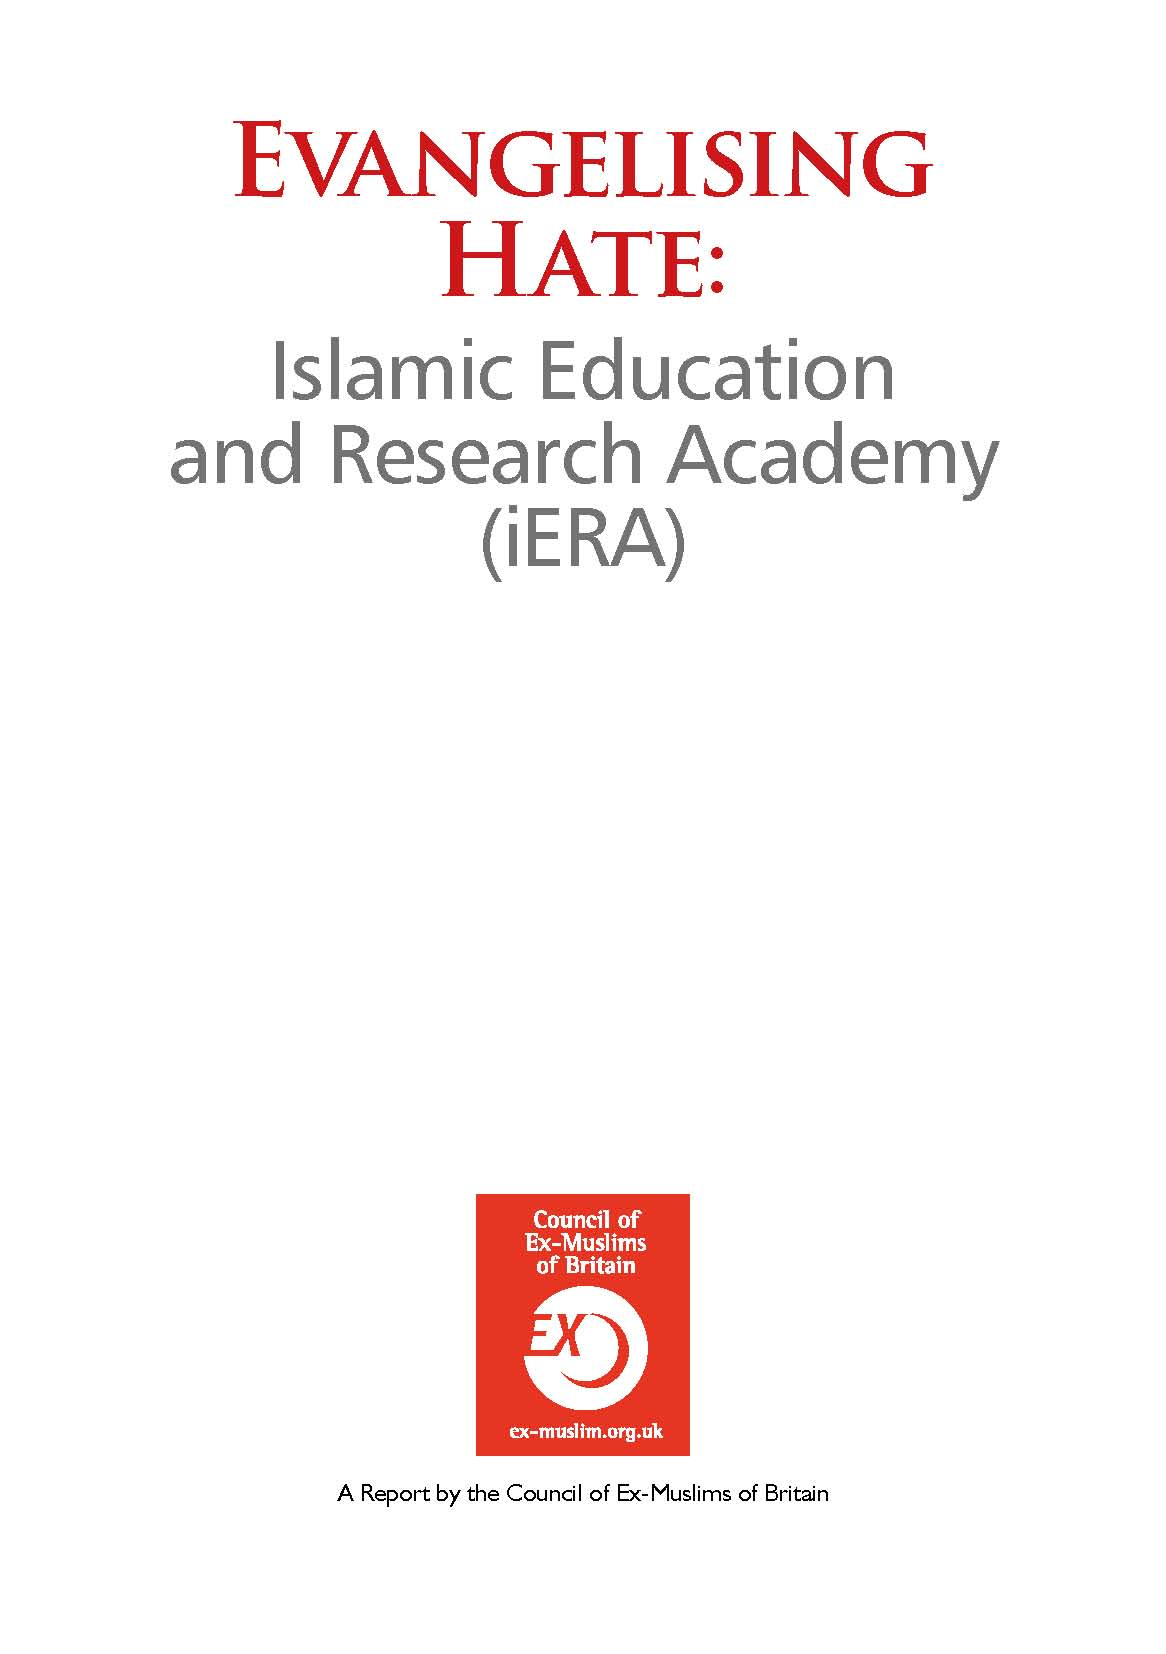 Evangelising Hate – Islamic Education and Research Academy (iERA)